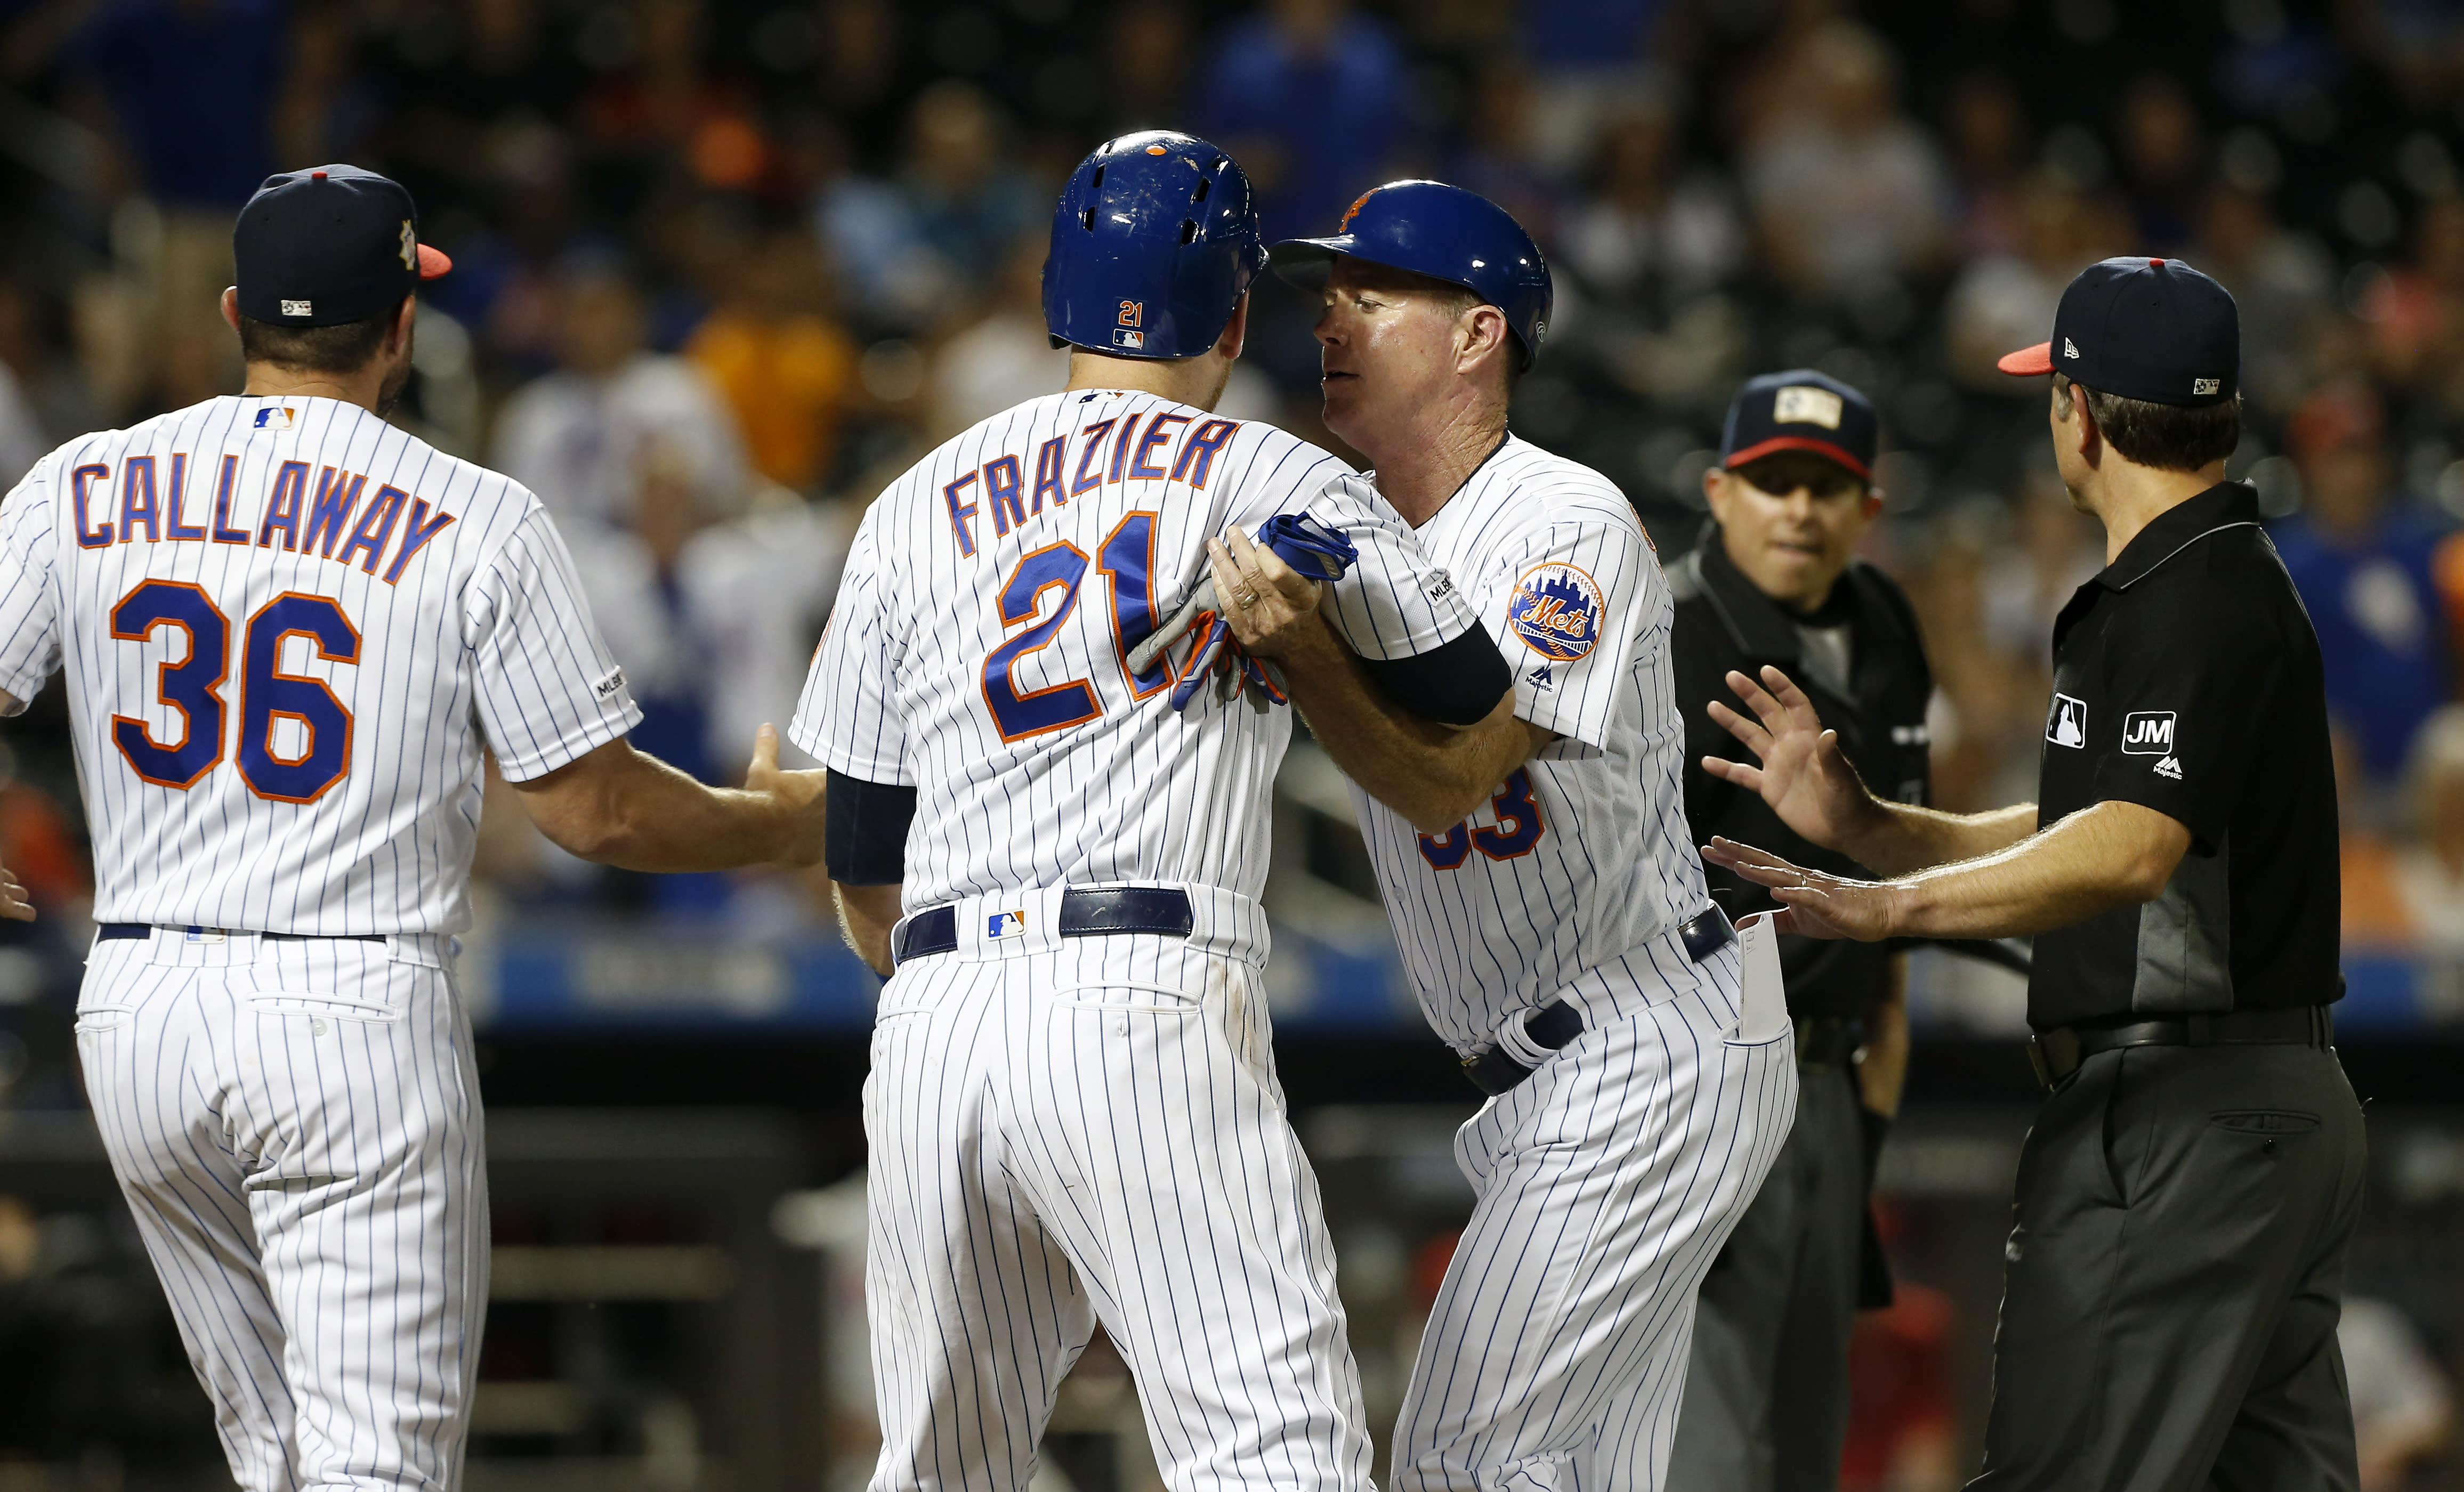 Jake Arrieta threatens to 'dent' Todd Frazier's skull following heated exchange